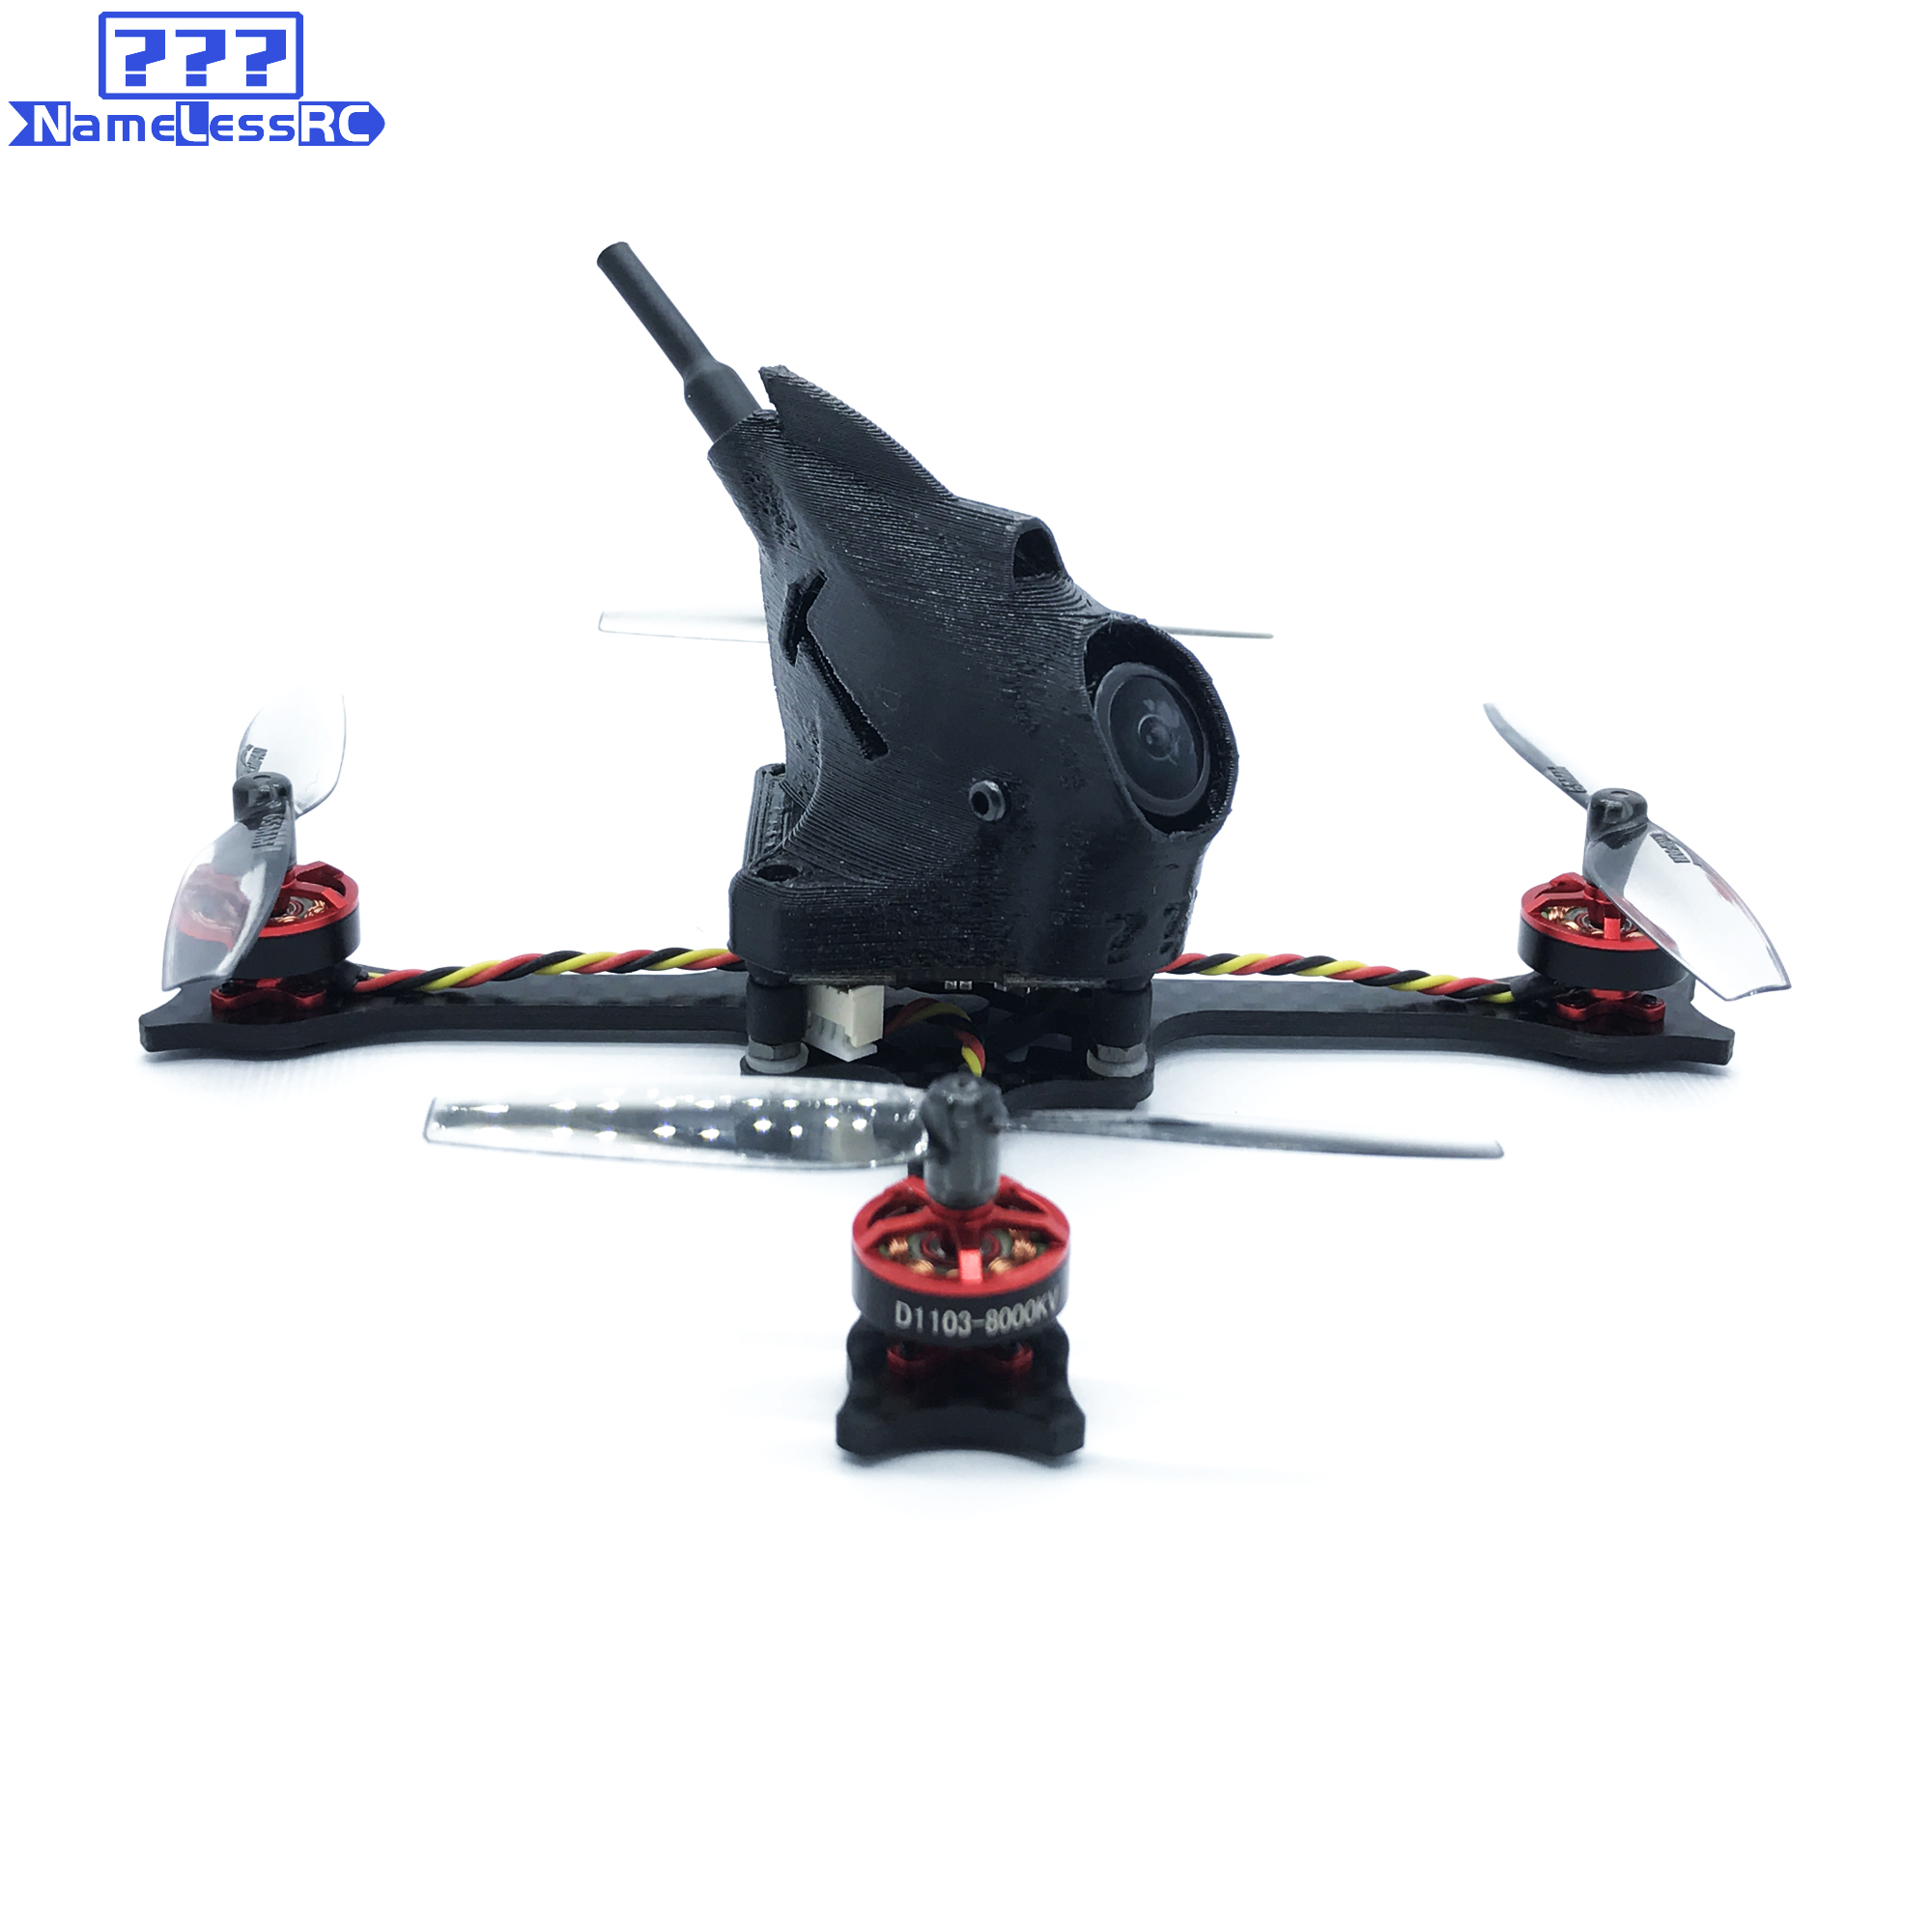 NameLessRC N47 65mm FPV Racing Drone - <b>BNF FRSKY</b>